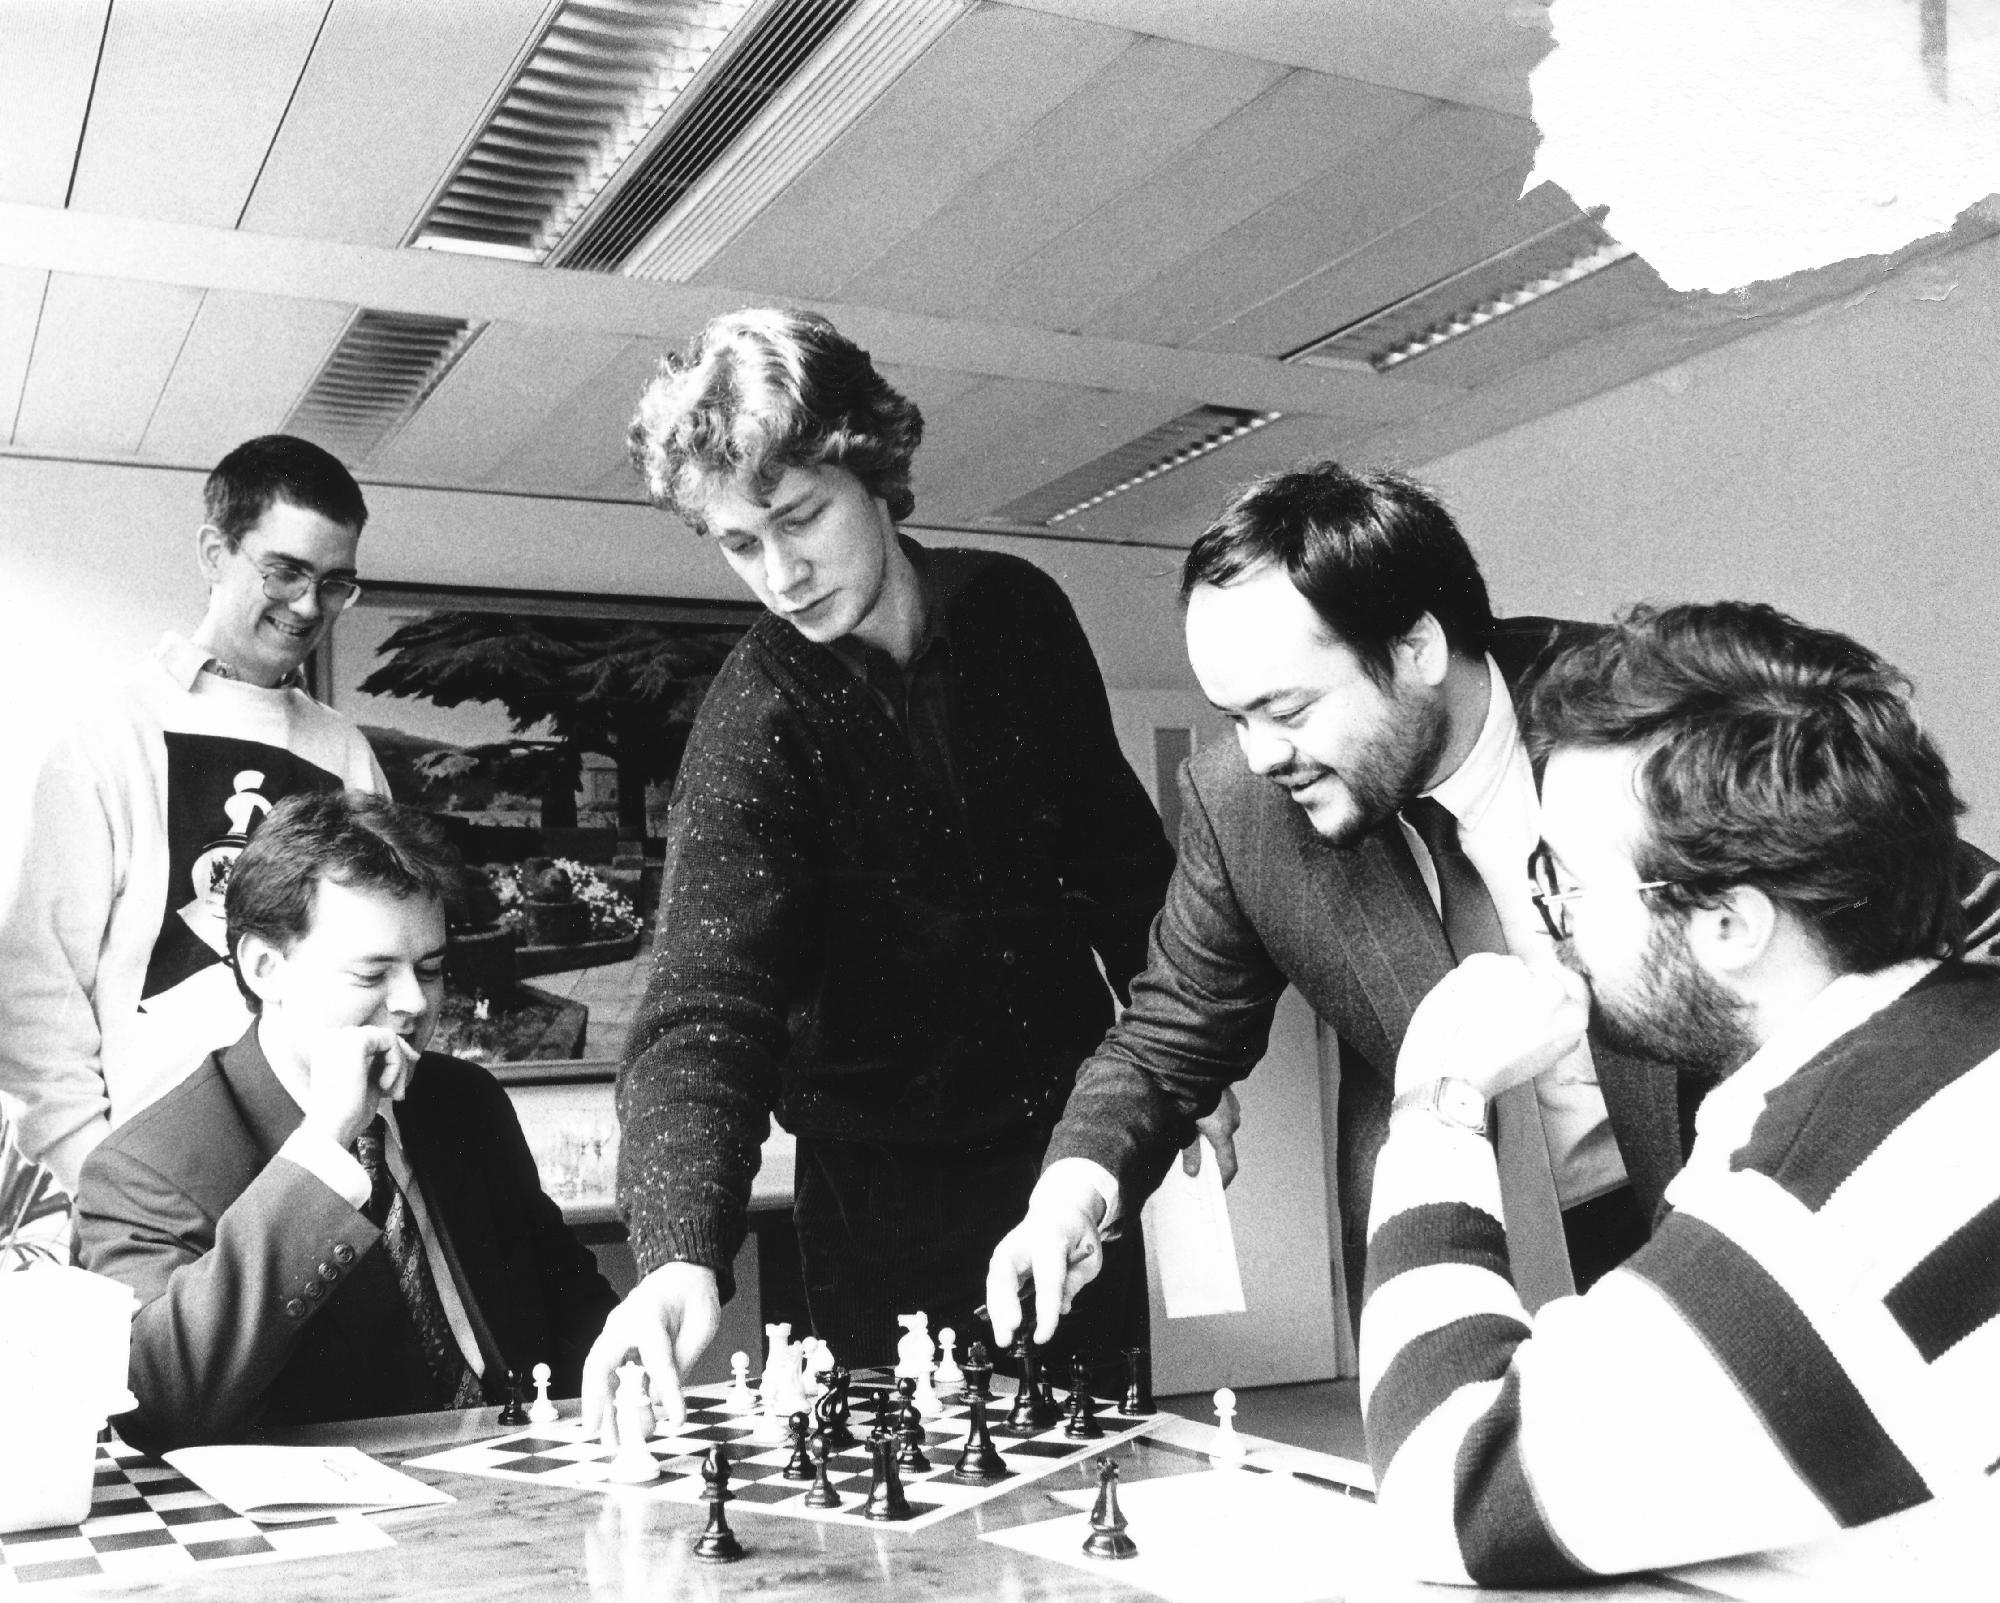 William Watson, Jonny Hector, Alexander Khalifman, Jonathan Tisdall and Nigel Davies at the 1991 Watson, Farley, Williams tournament in London.